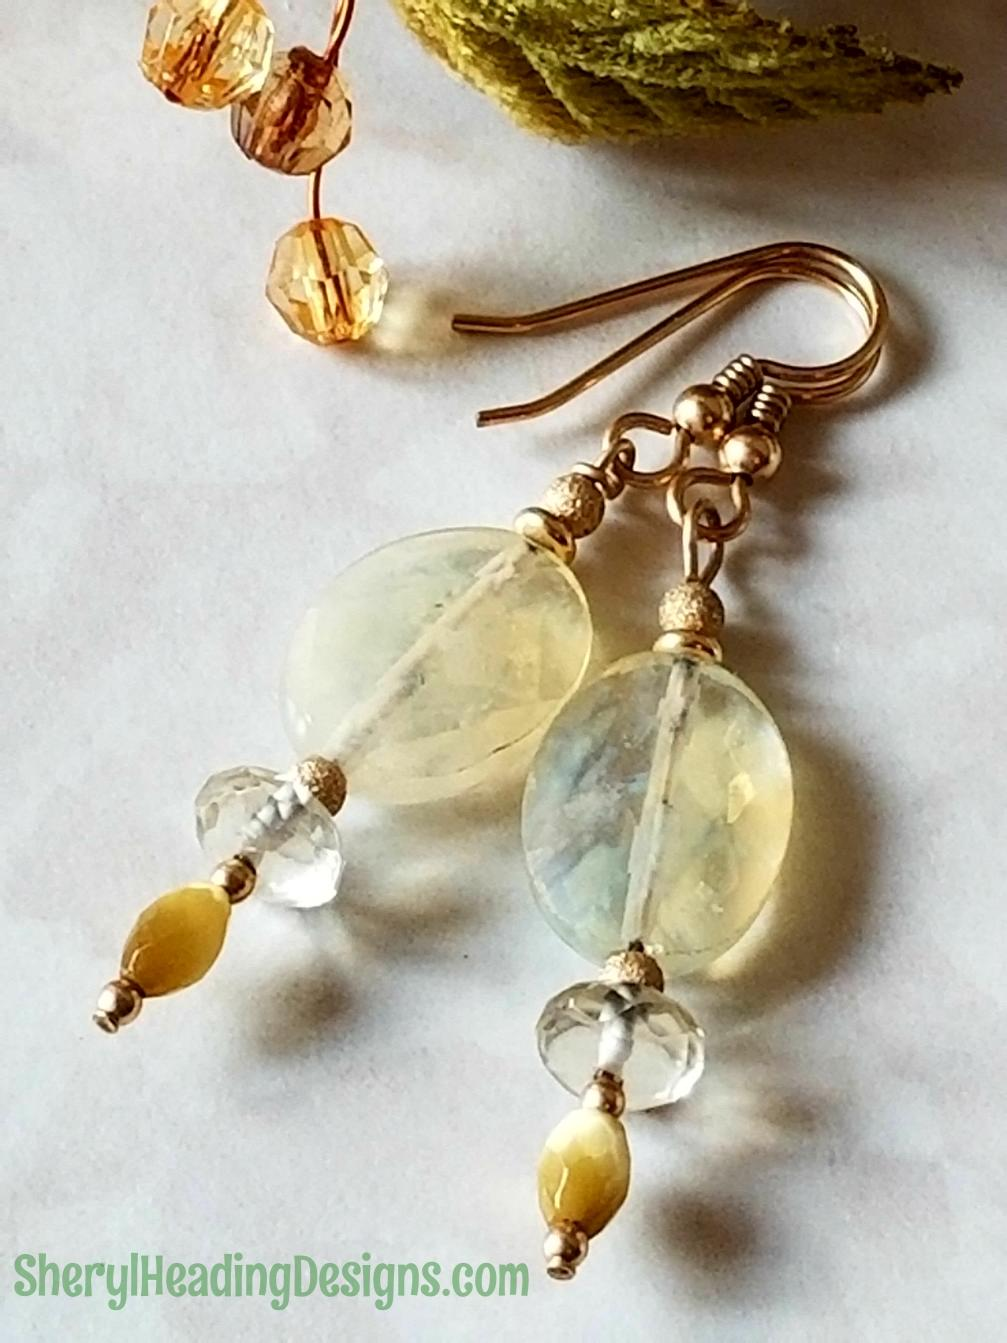 Golden Sugar Top Dangle Earrings - Sheryl Heading Designs